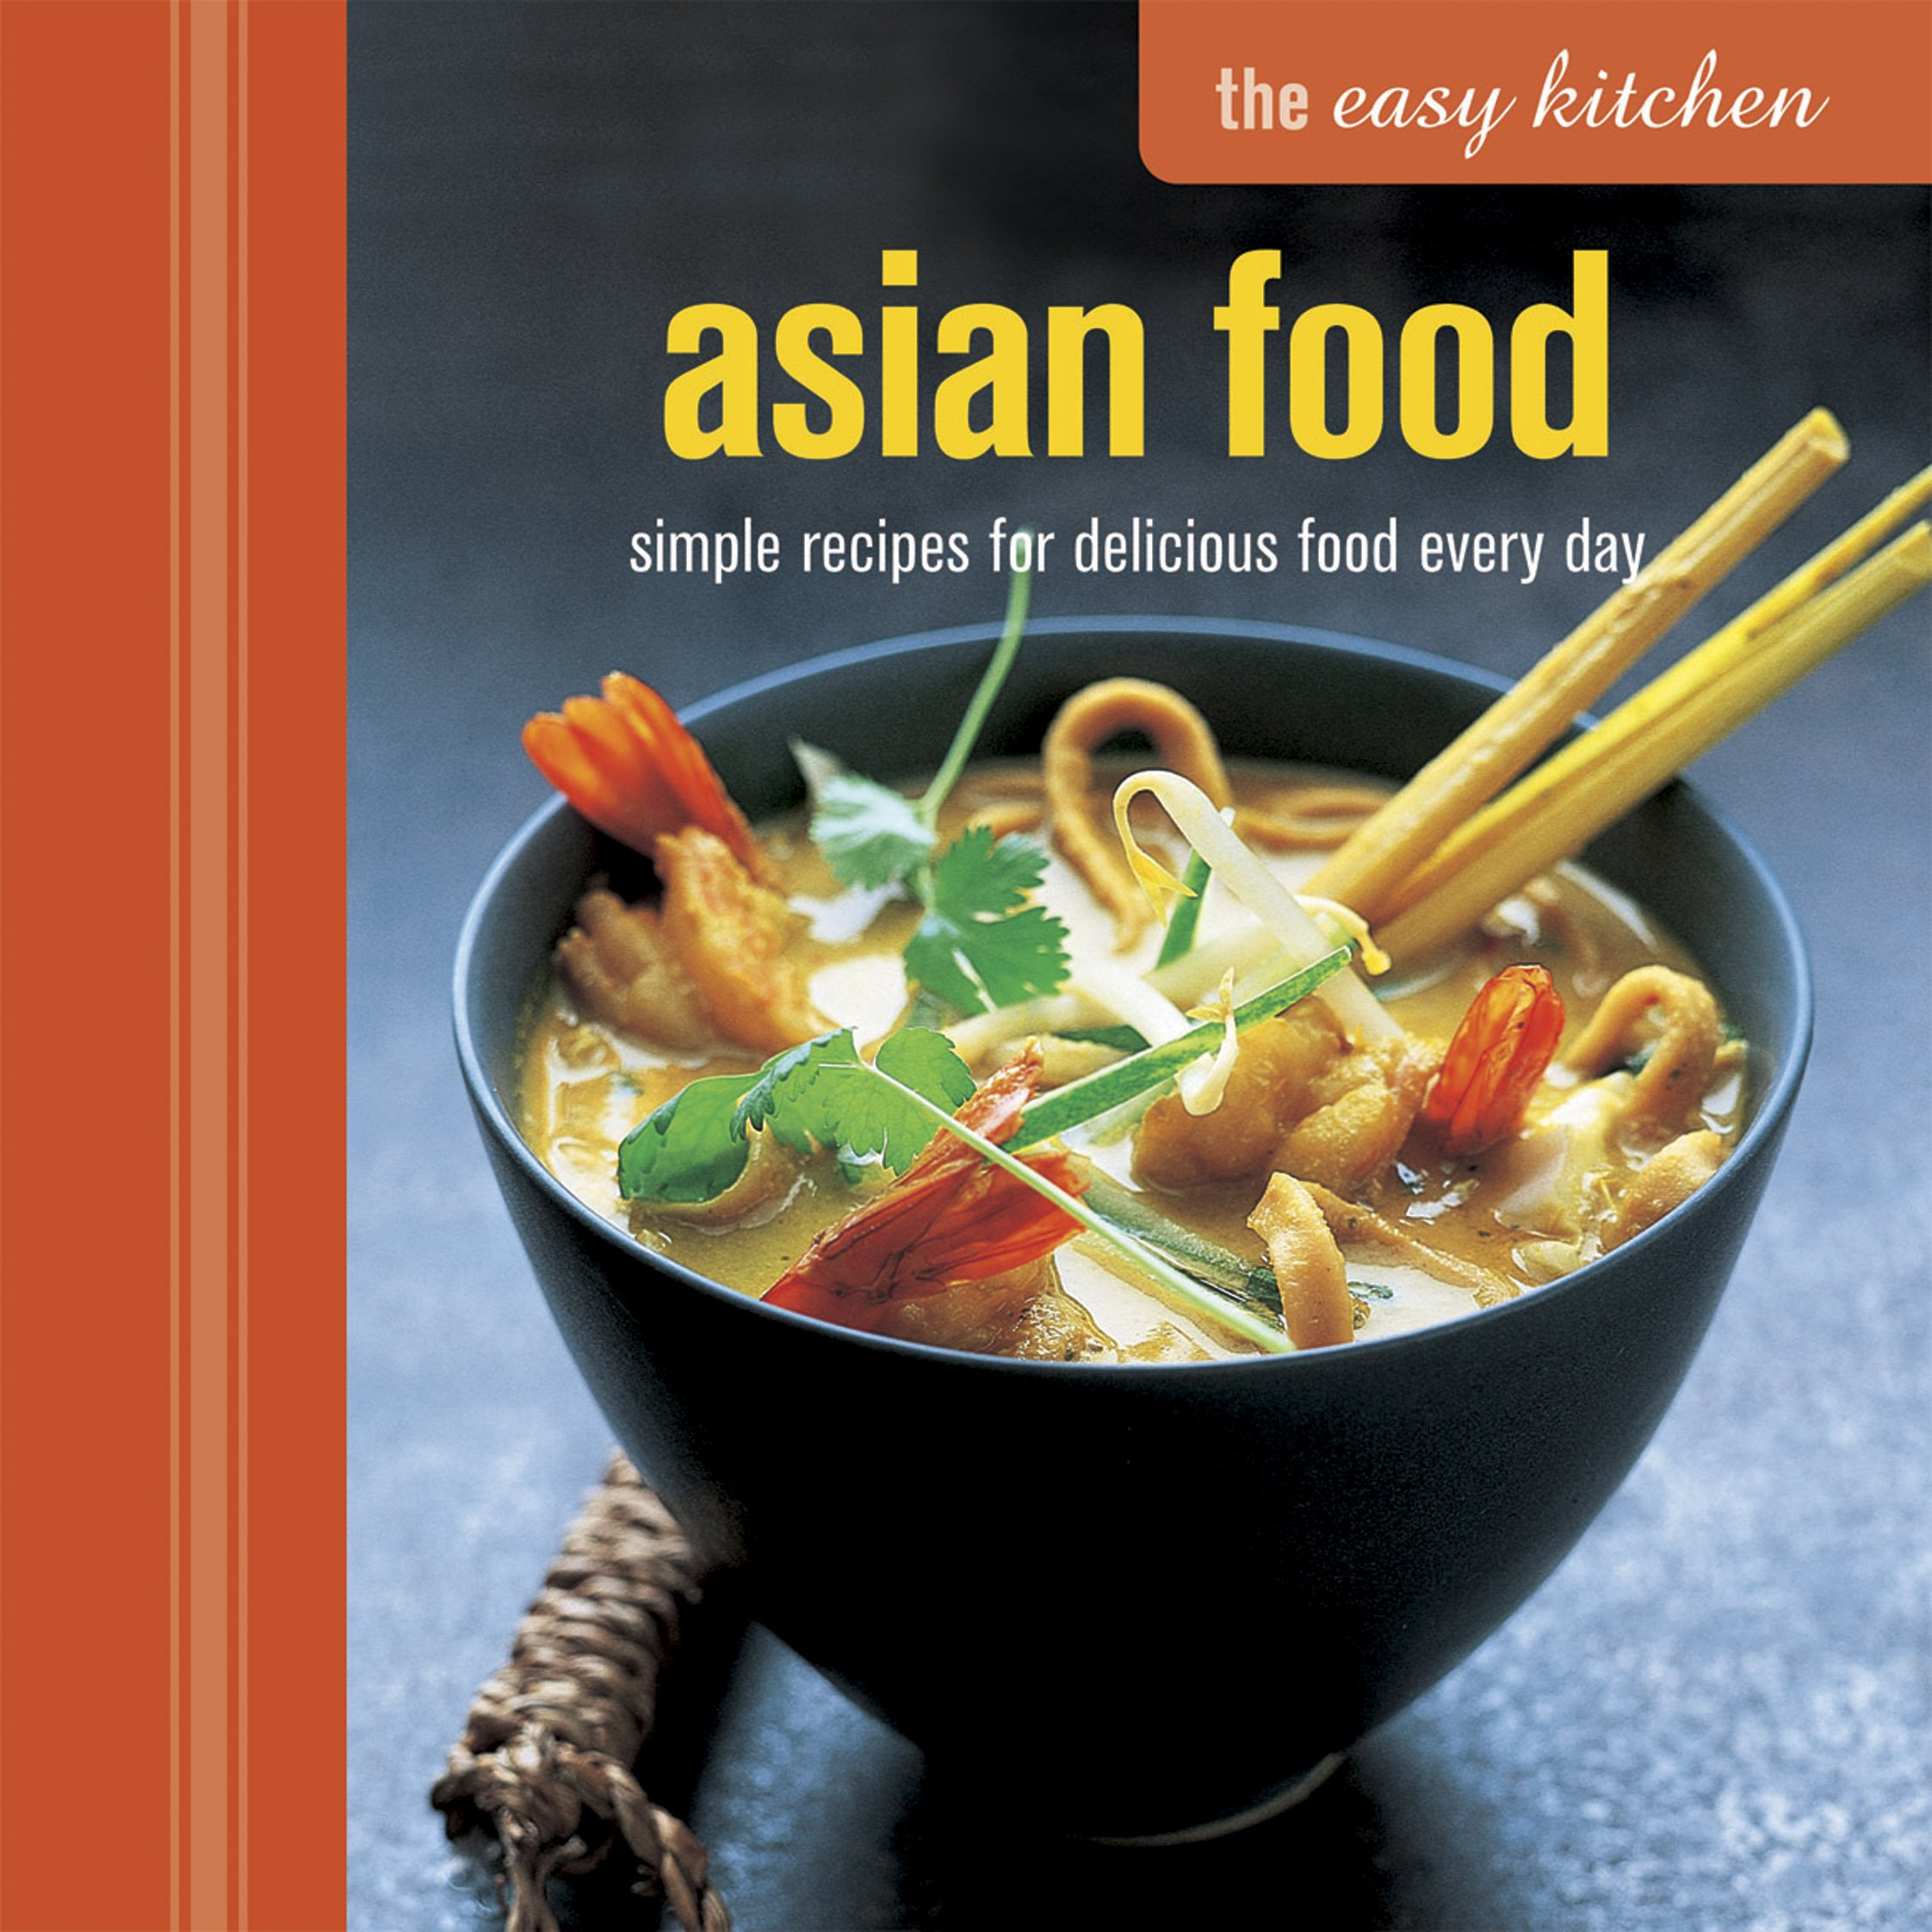 Easy kitchen asian food the easy kitchen ryland peters small easy kitchen asian food the easy kitchen ryland peters small 9781849755023 amazon books forumfinder Choice Image